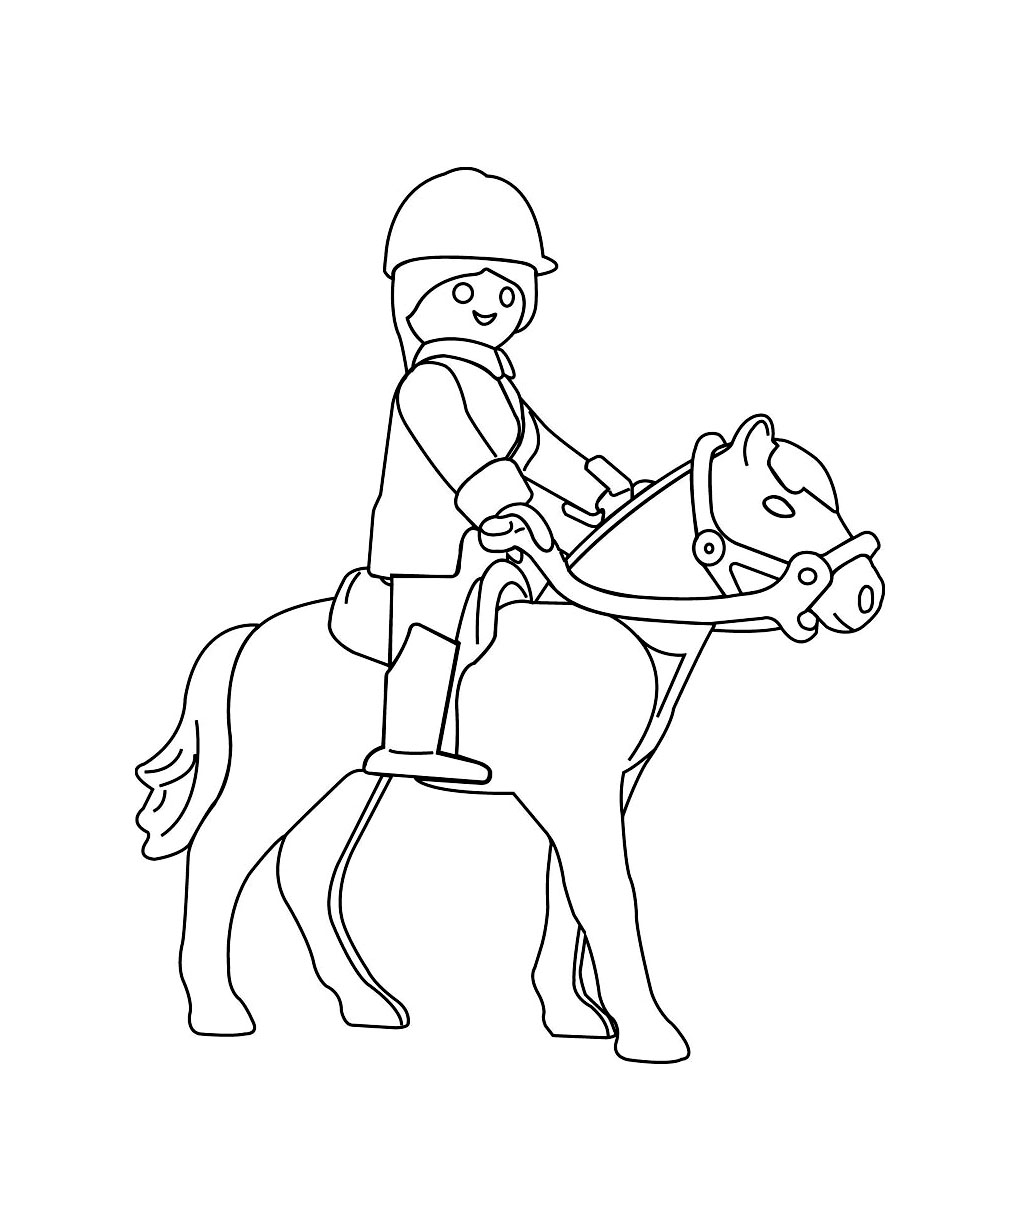 playmobils for children  playmobils kids coloring pages